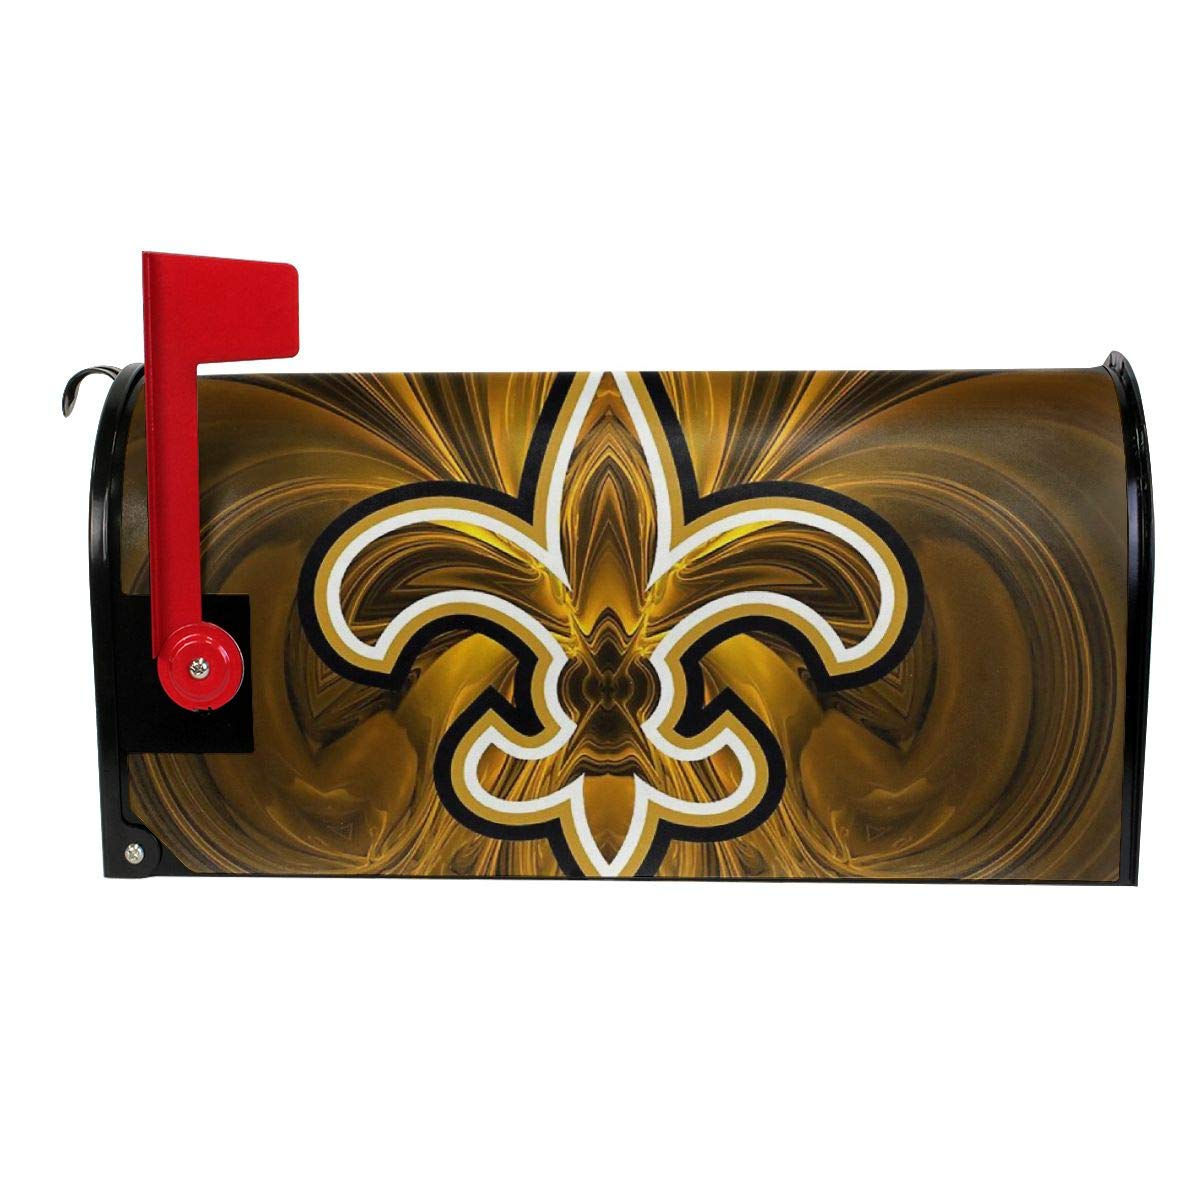 DLZXHomer Mailbox Cover New Orleans Saints Primary Letter Post Box Cover Wrap Magnetic Mailbox Wraps Standard Size Decoration Welcome Home Garden Outdoor (21 X 18 in, 25.5 X 21 in) W X L